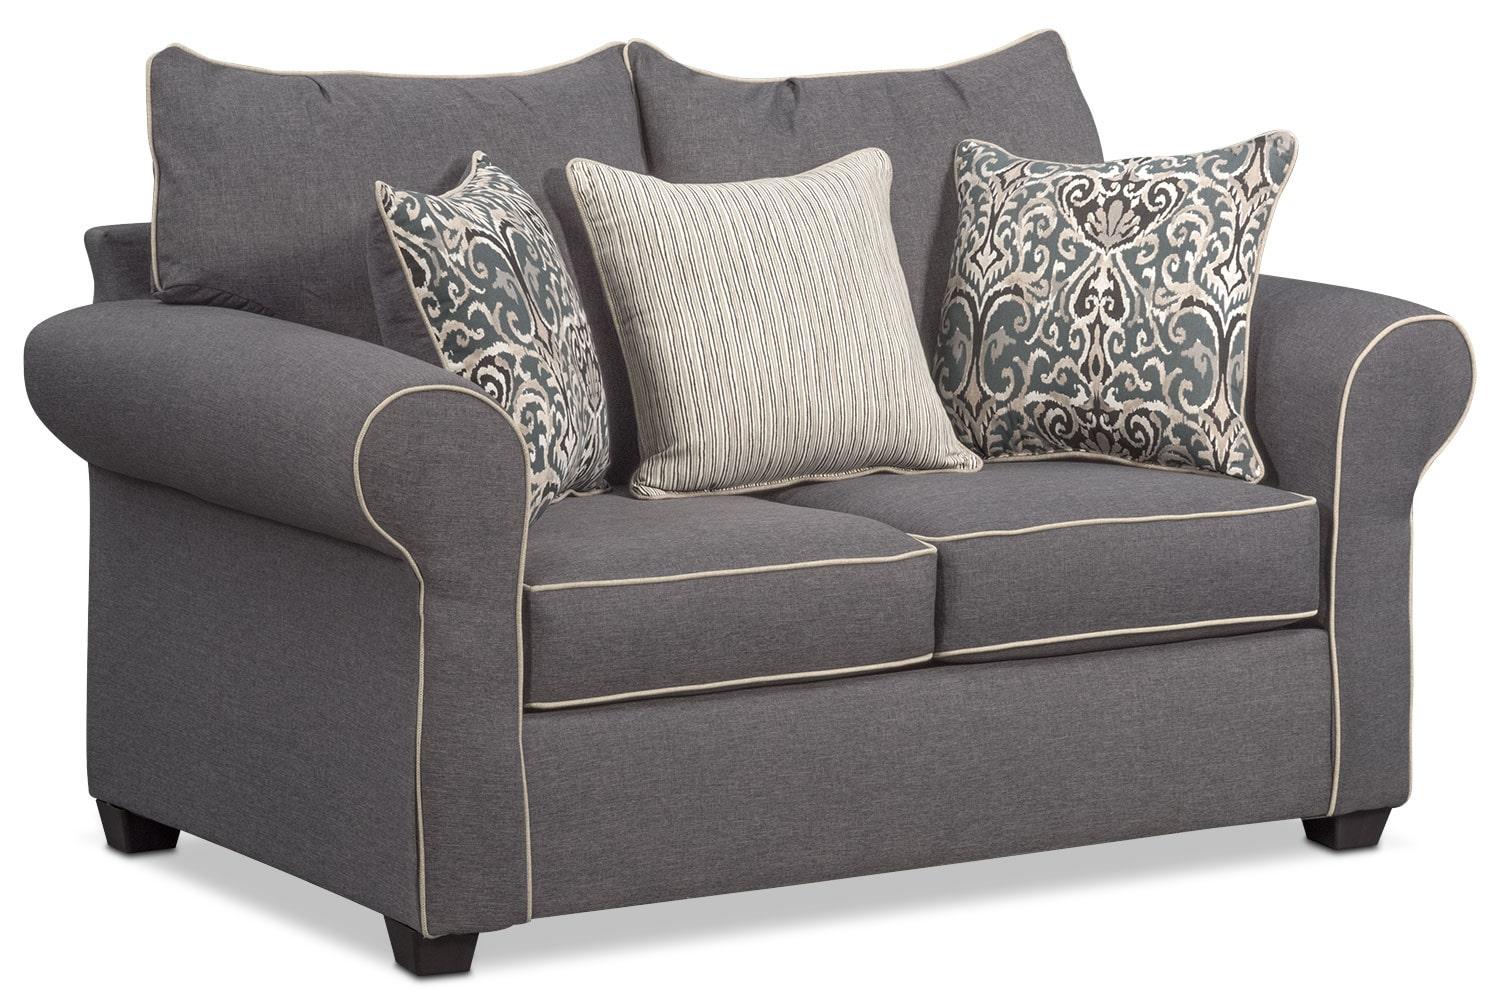 Carla sofa and loveseat set gray